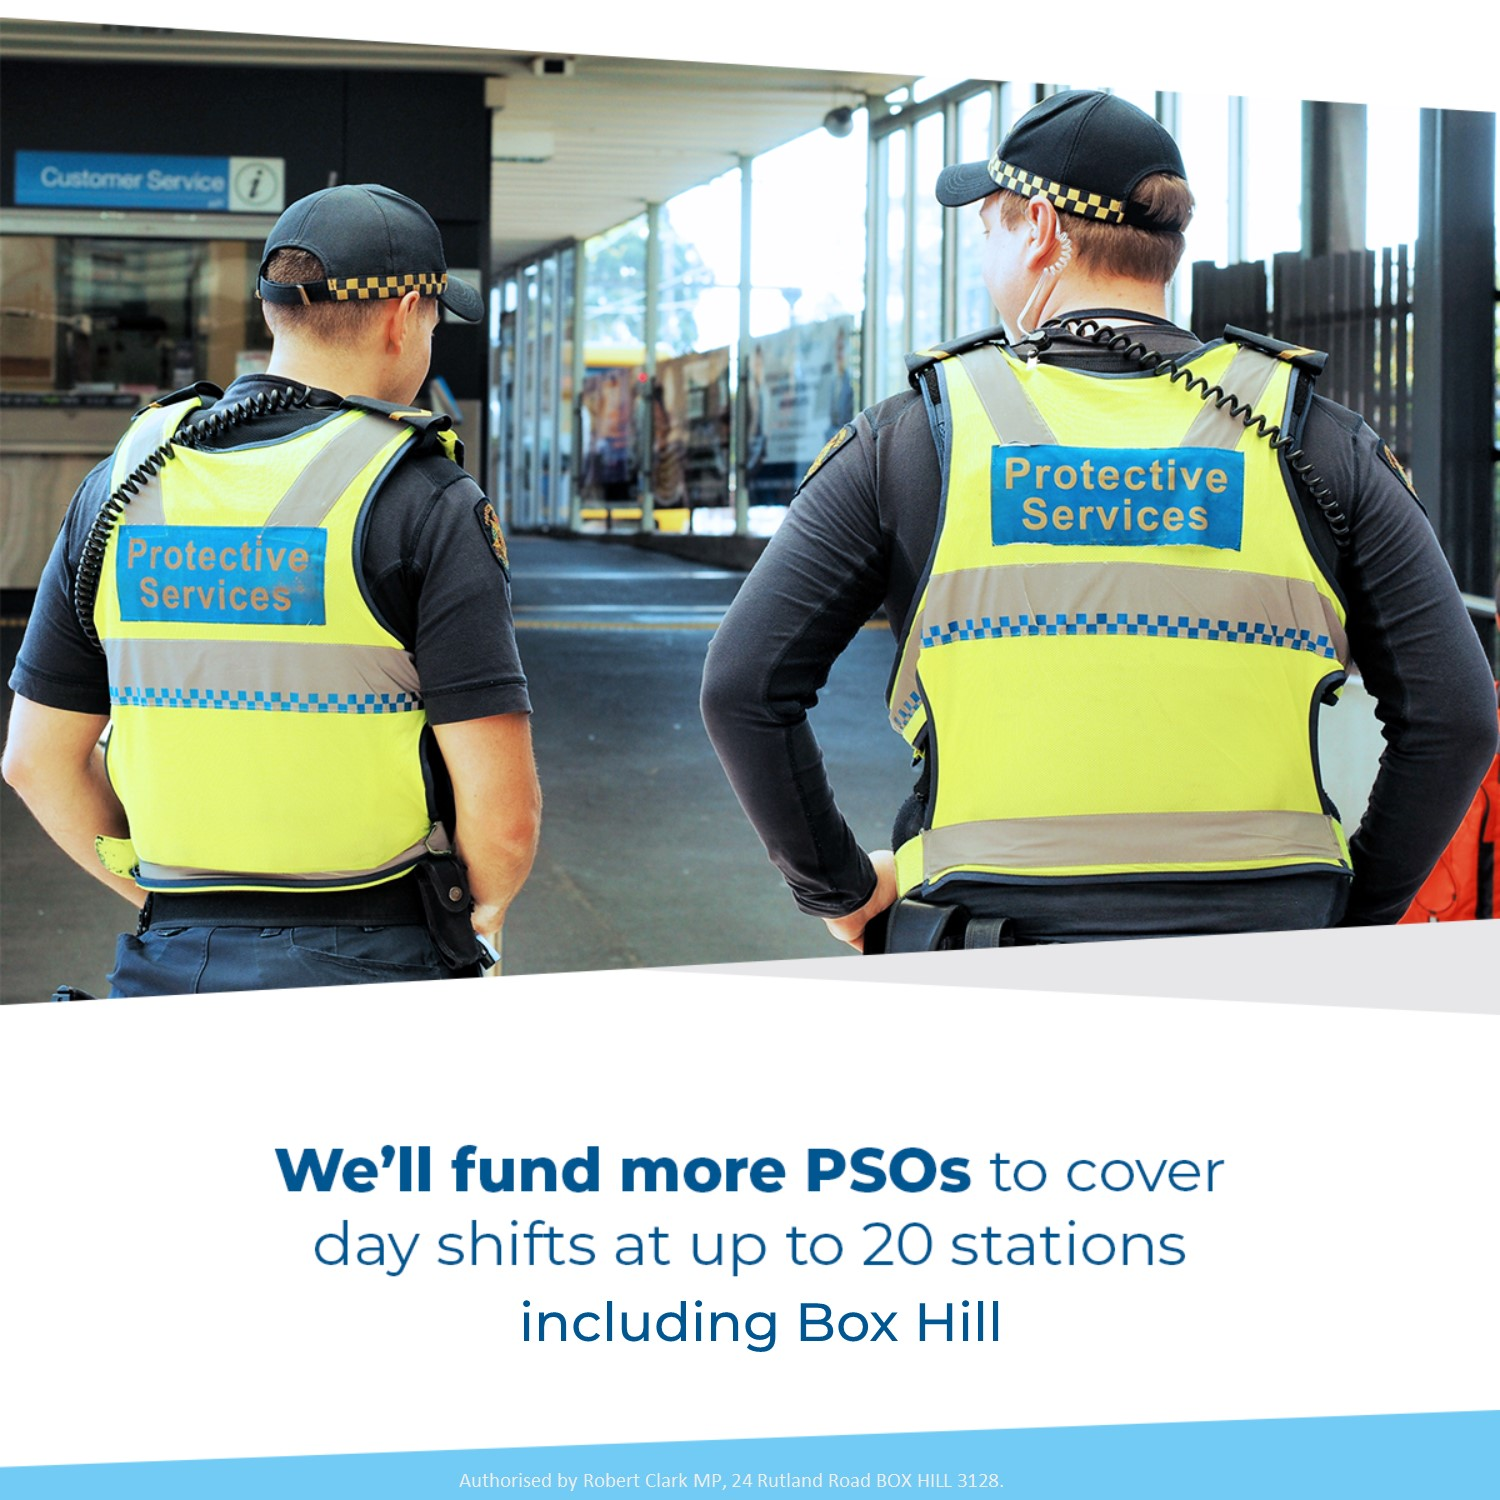 Daytime PSOs for Box Hill